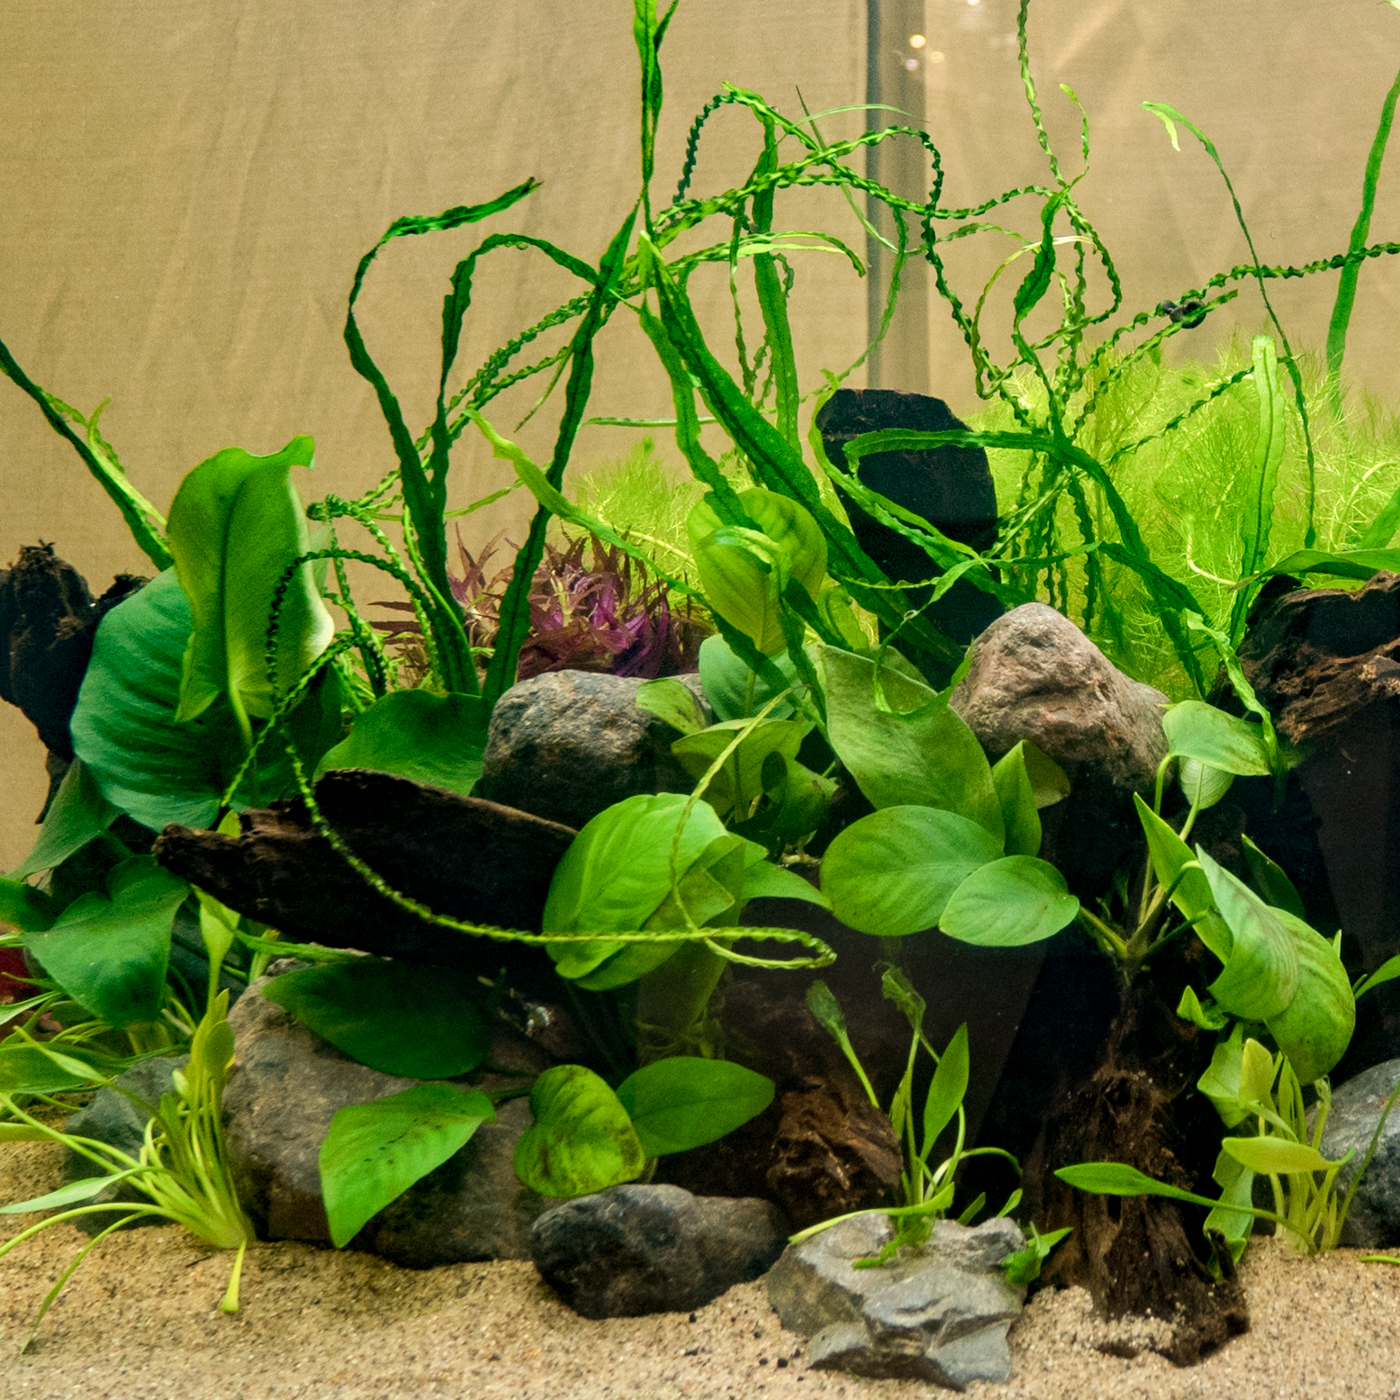 2017 02 09 Mad-Town Aquascaping Contest (177 of 287).jpg